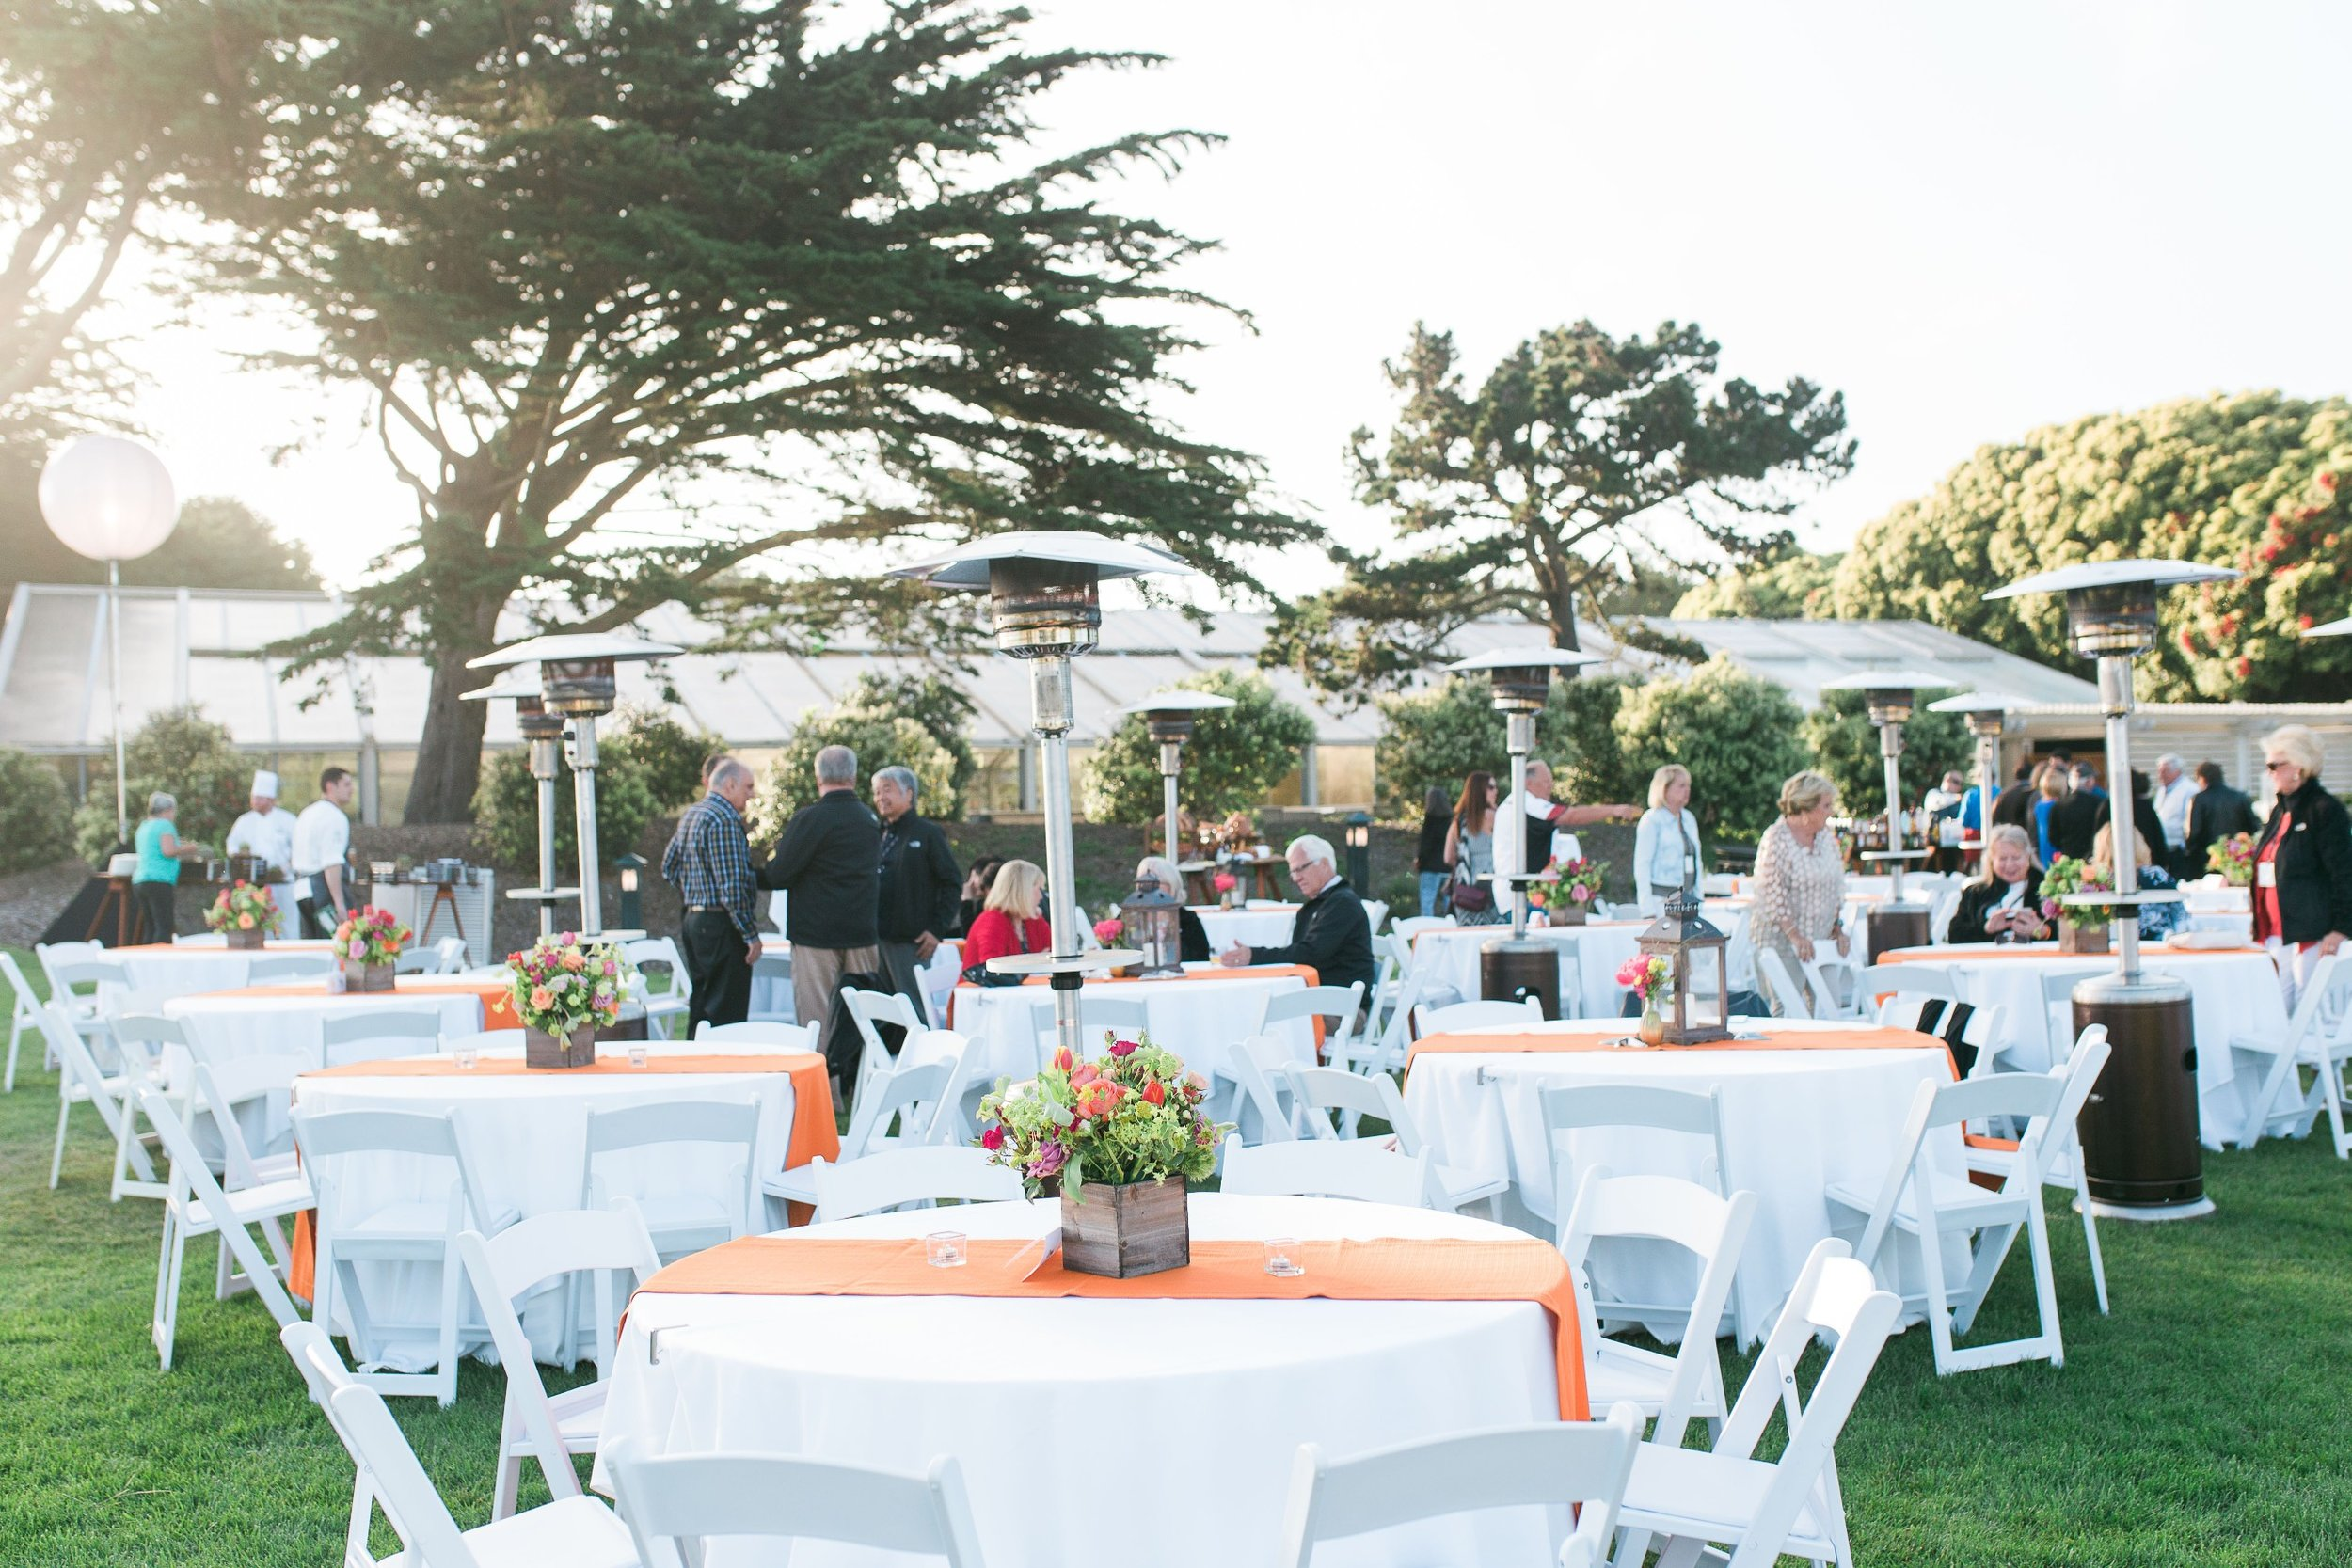 Best-Corporate-Event-Venue-San-Francisco-Ritz-Carlton-Half-Moon-Bay-Photographer-SF-by-JBJ-PIctures (5).jpg